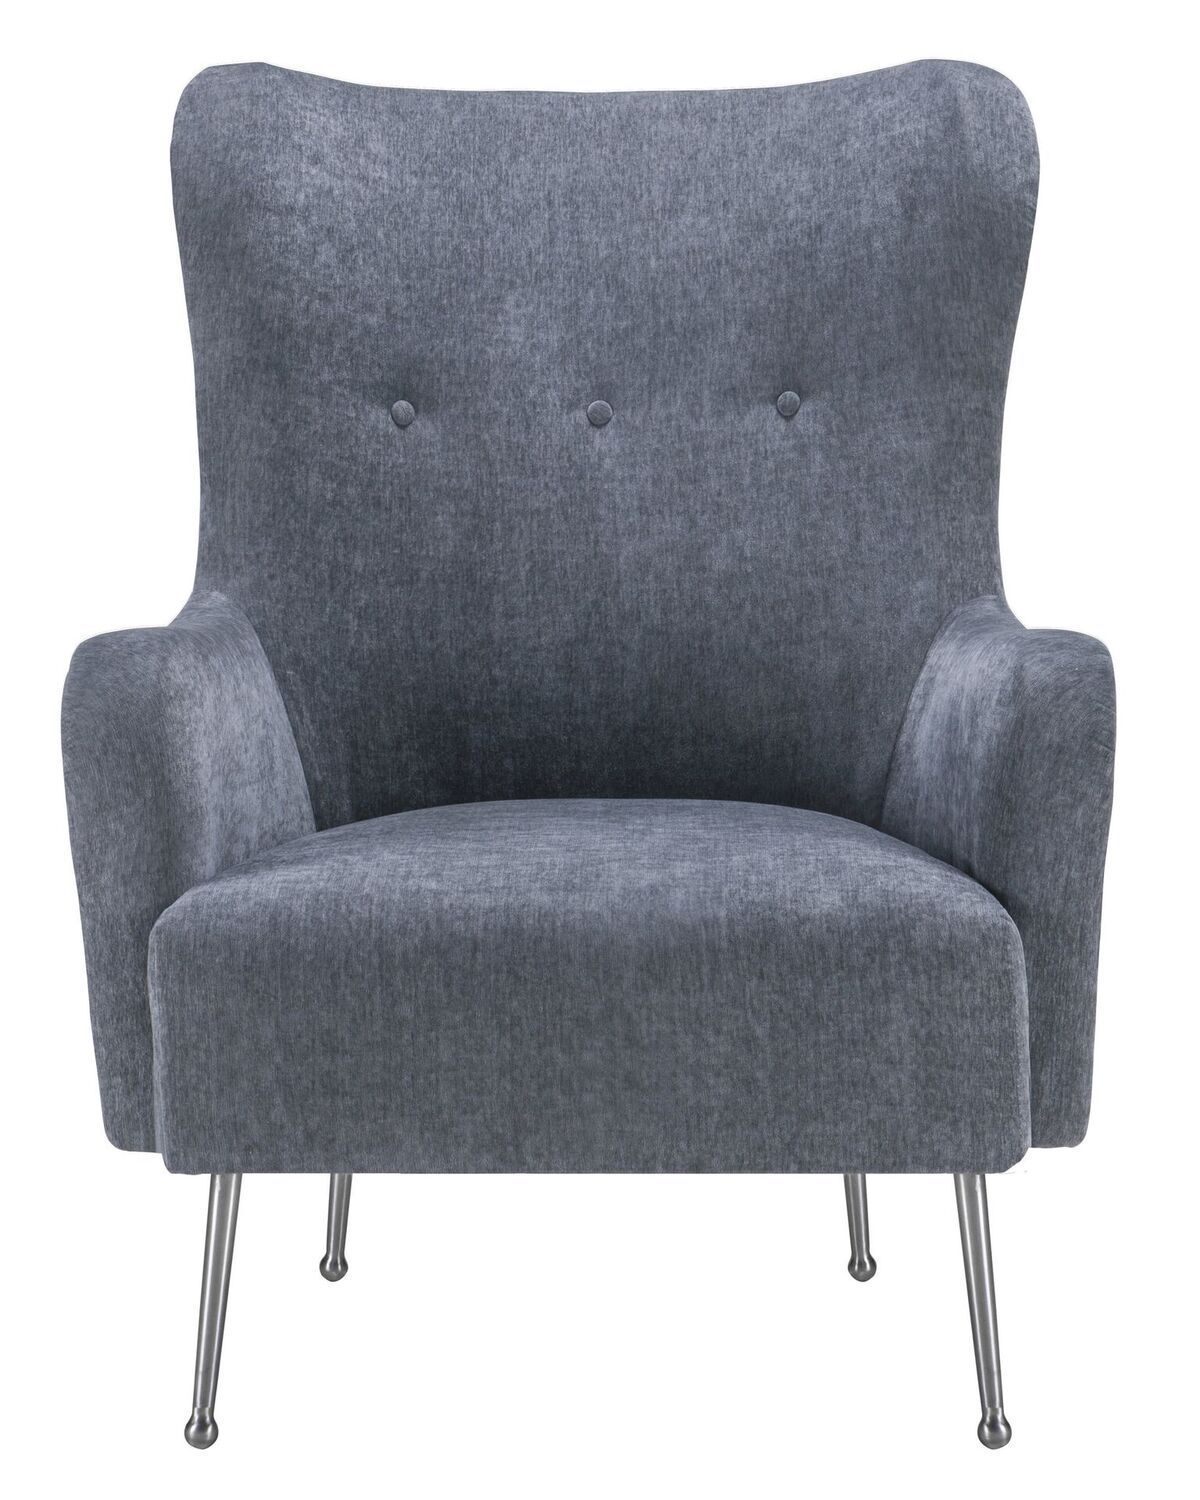 Evan Grey Velvet Chair Products Chair Chair Upholstery Grey